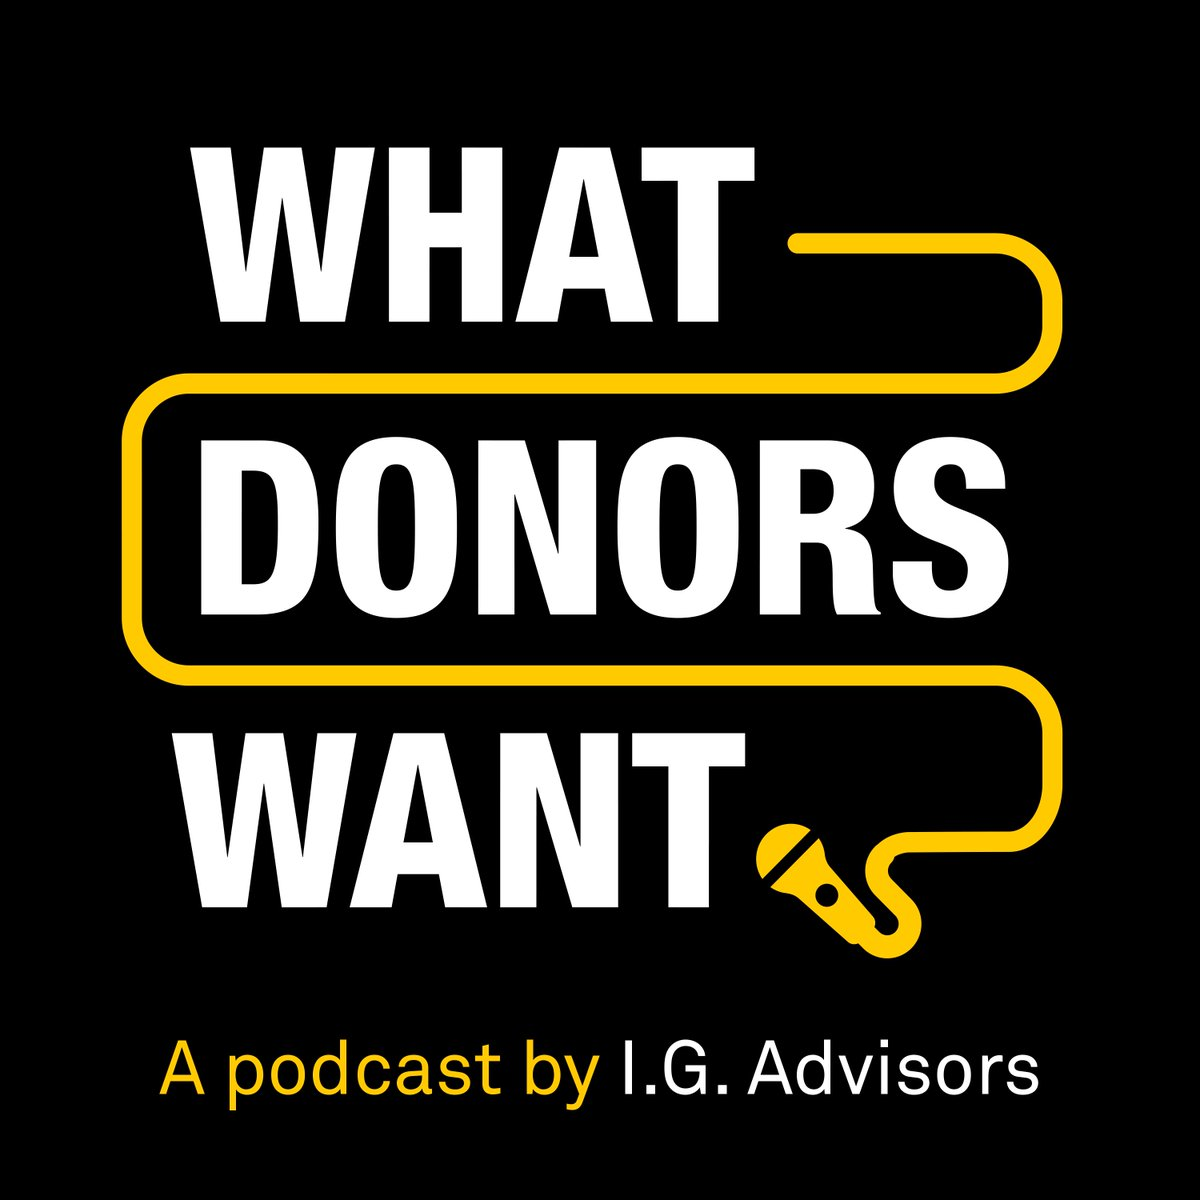 Check it #charity, #fundraising &amp; #philanthropy folks! @IG_Advisors&#39; latest episode of our &#39;What Donors Want&#39; podcast is now live. This time we chat to @comicrelief&#39;s @askewadam.   http:// apple.co/2iMTyQw  &nbsp;  <br>http://pic.twitter.com/yGHXCEAfUX